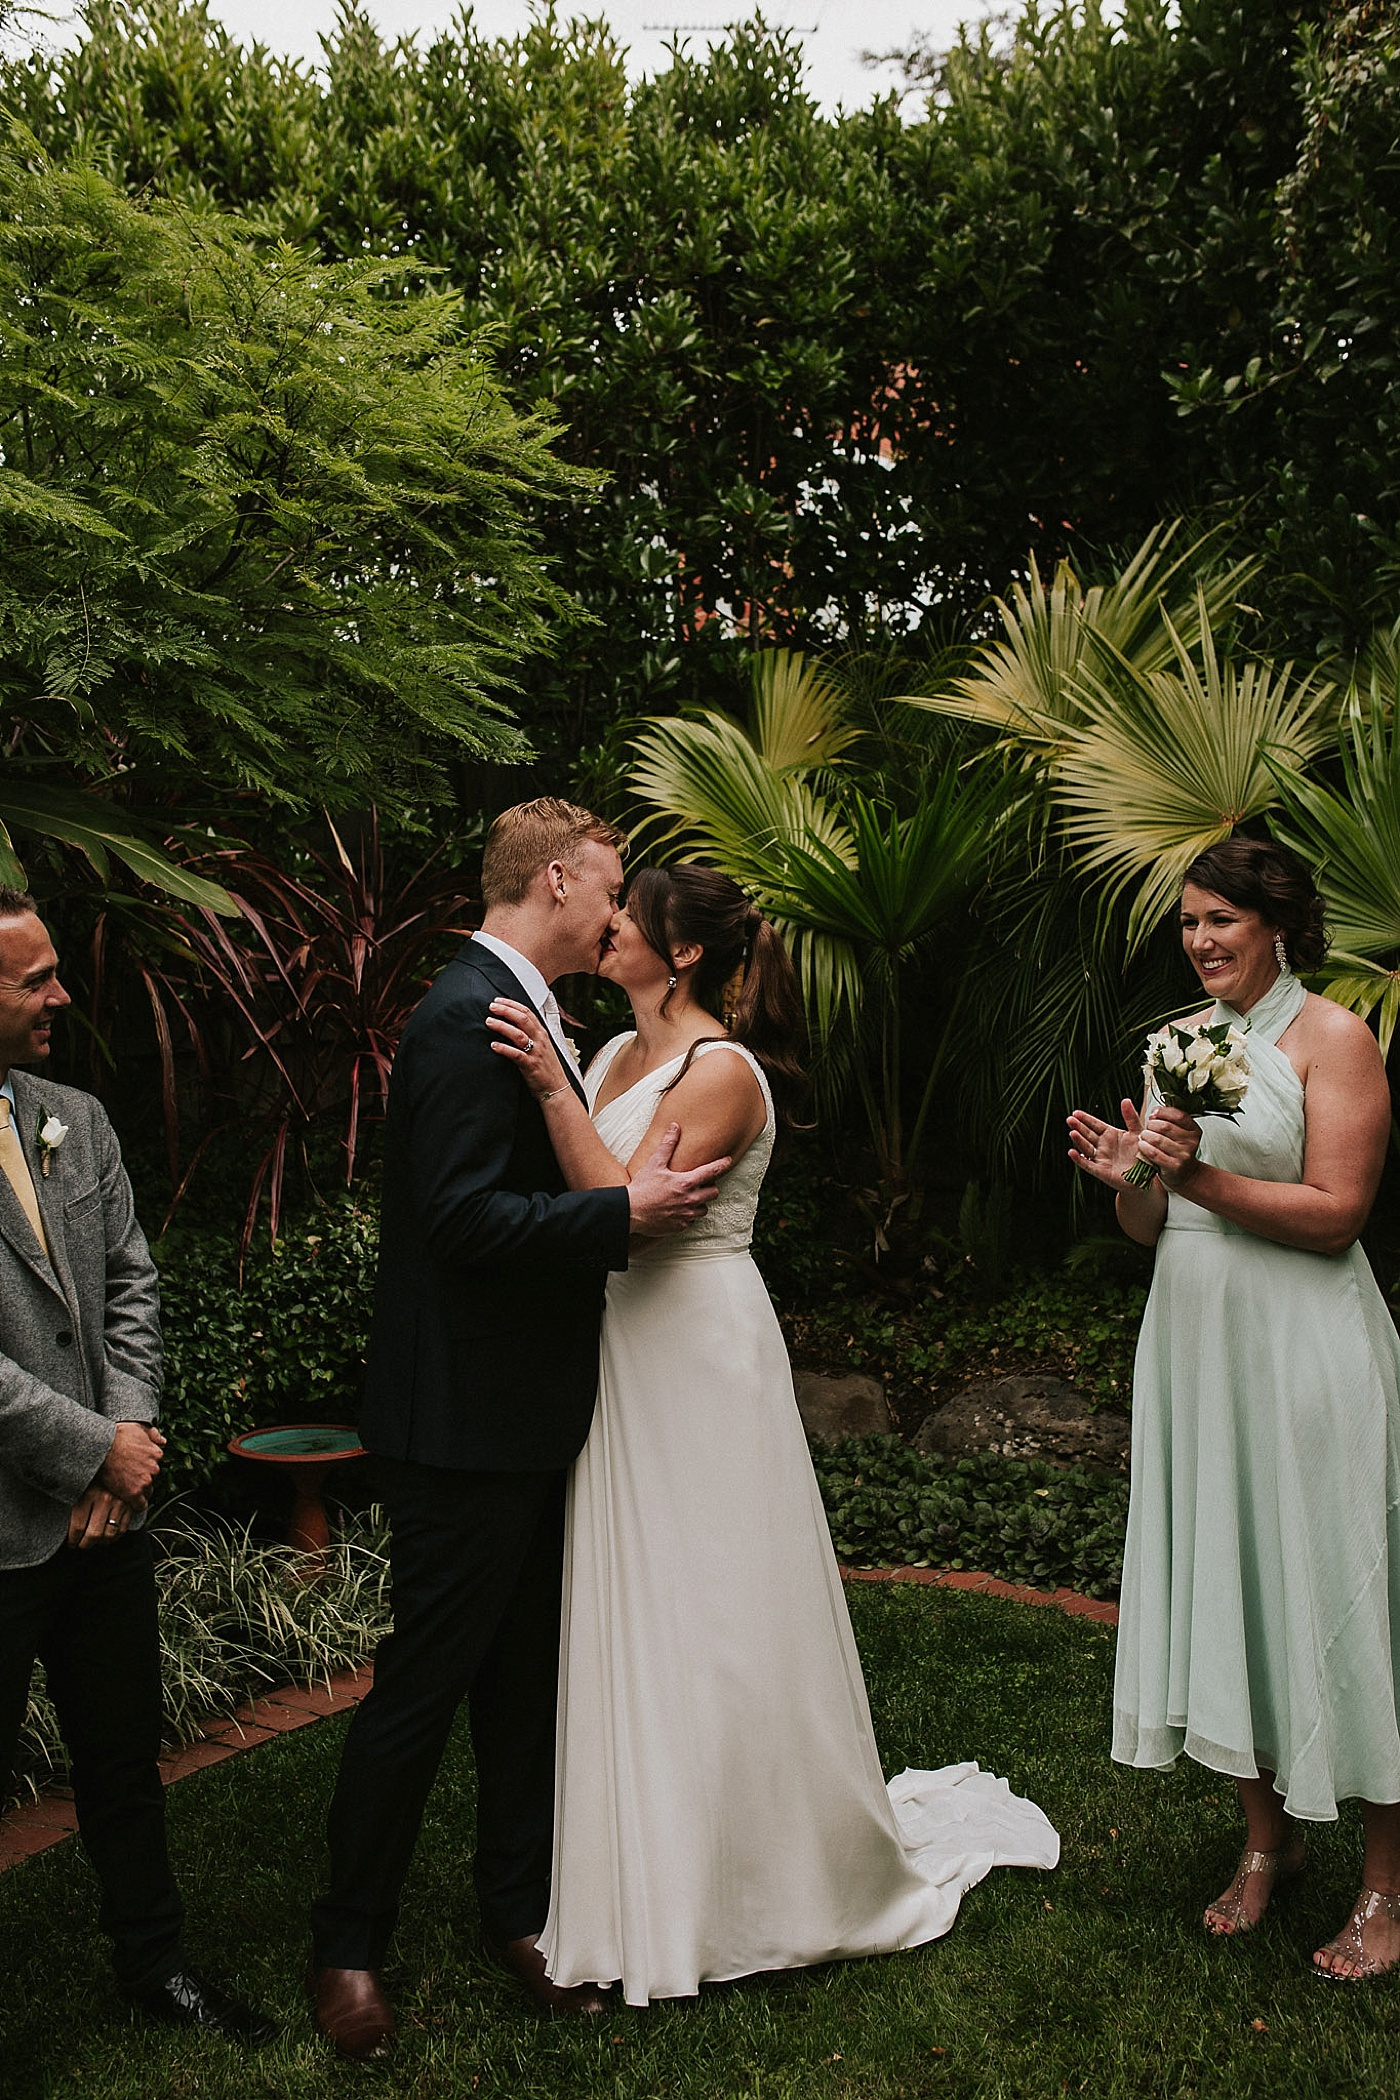 Brooke&David_Melbourne-Quirky-Relaxed-Fun-Casual-Backyard-Wedding_Melbourne-Wedding-Photography-49